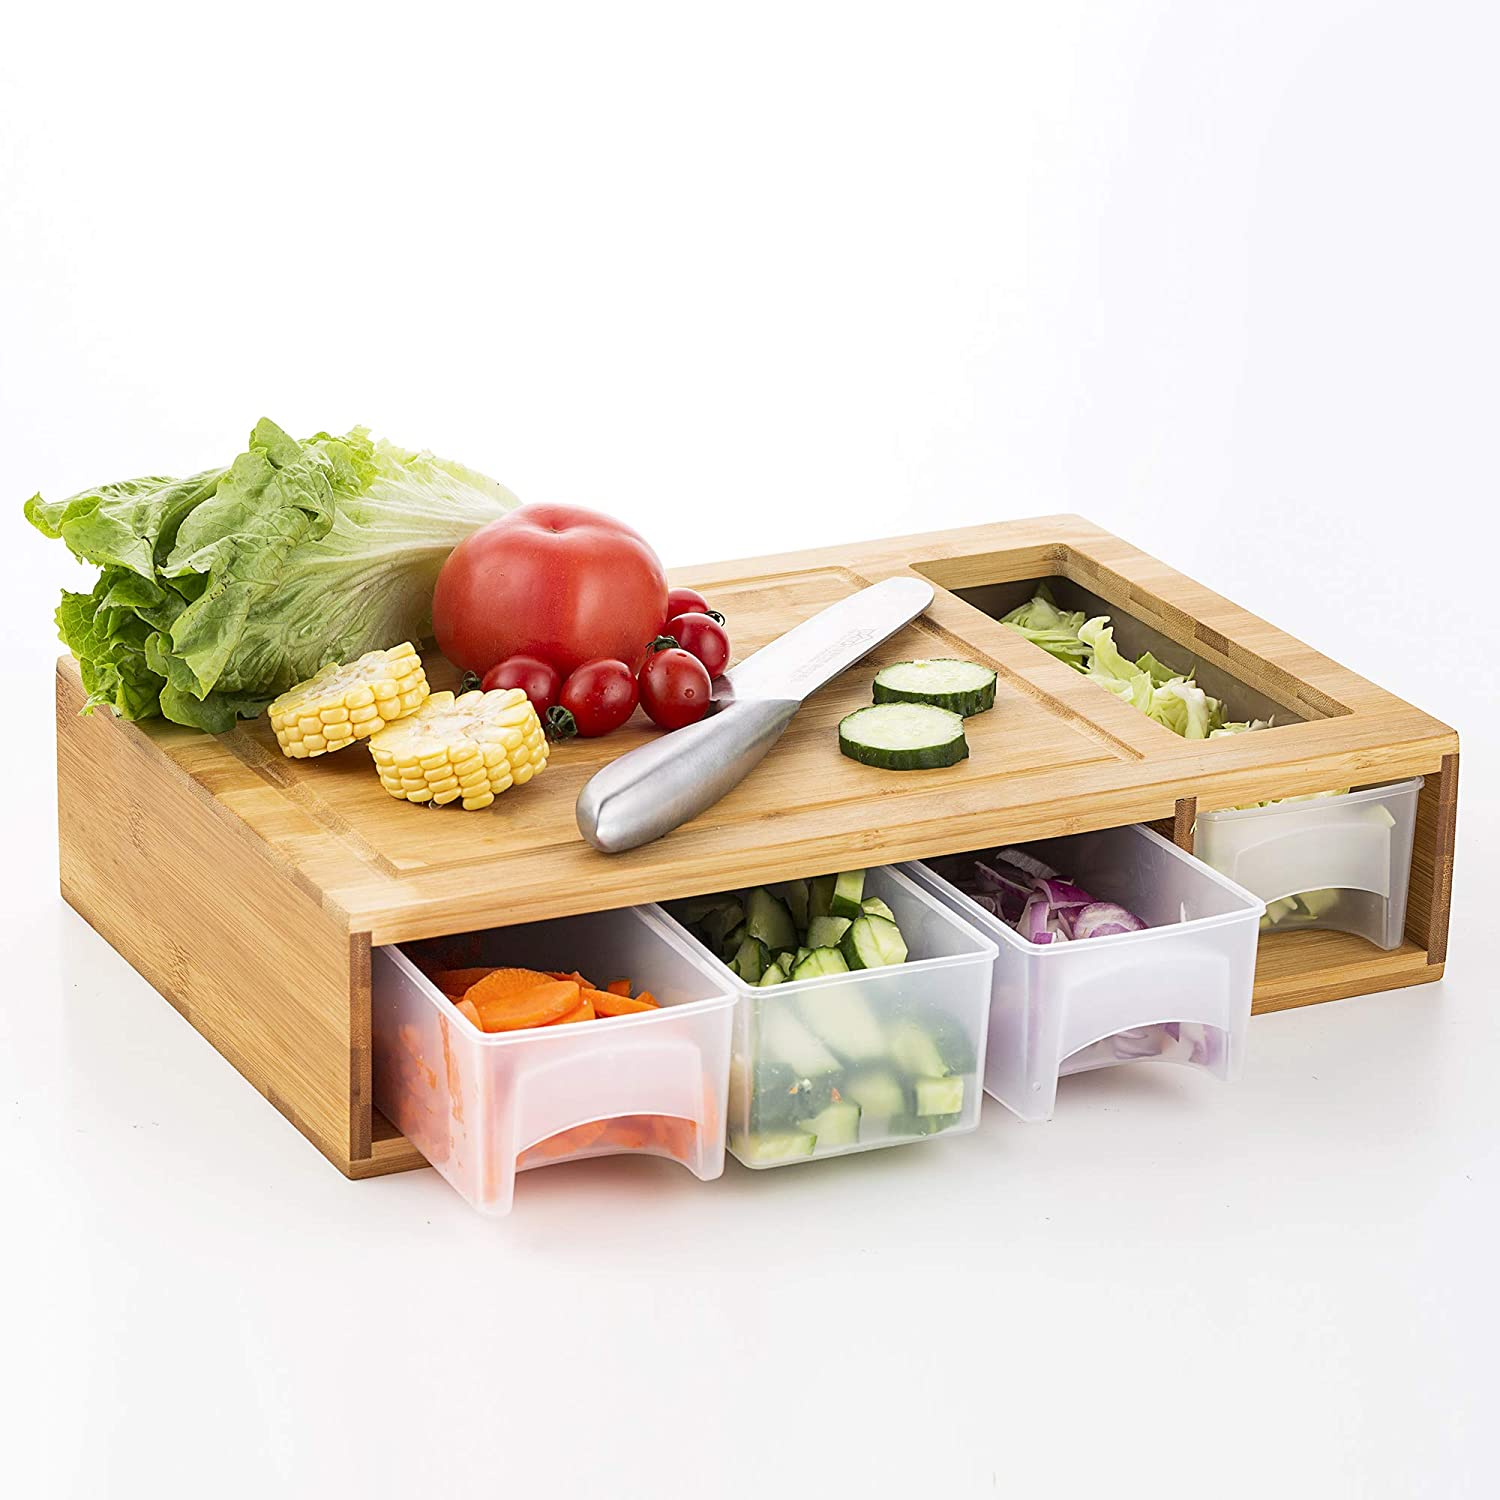 Bamboo Wooden Cutting Board with 4 Container Drawers For Kitchen, Cooking, Food Preparation, Serving, Chopping